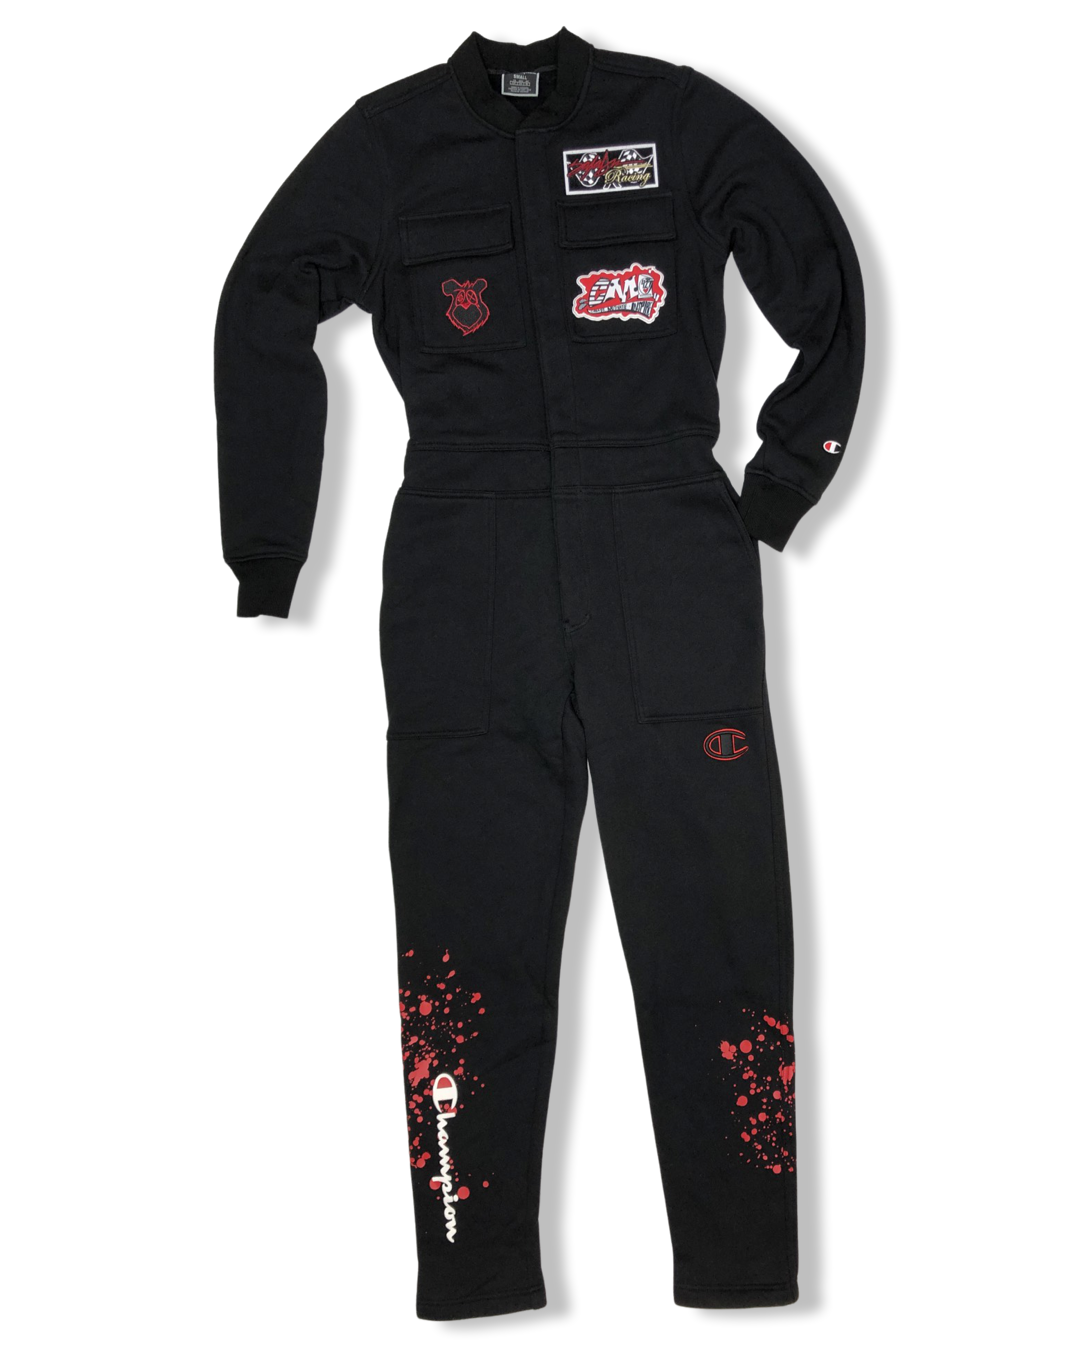 Champion X King Saladeen Money Bear Coverall Jumpsuit Black